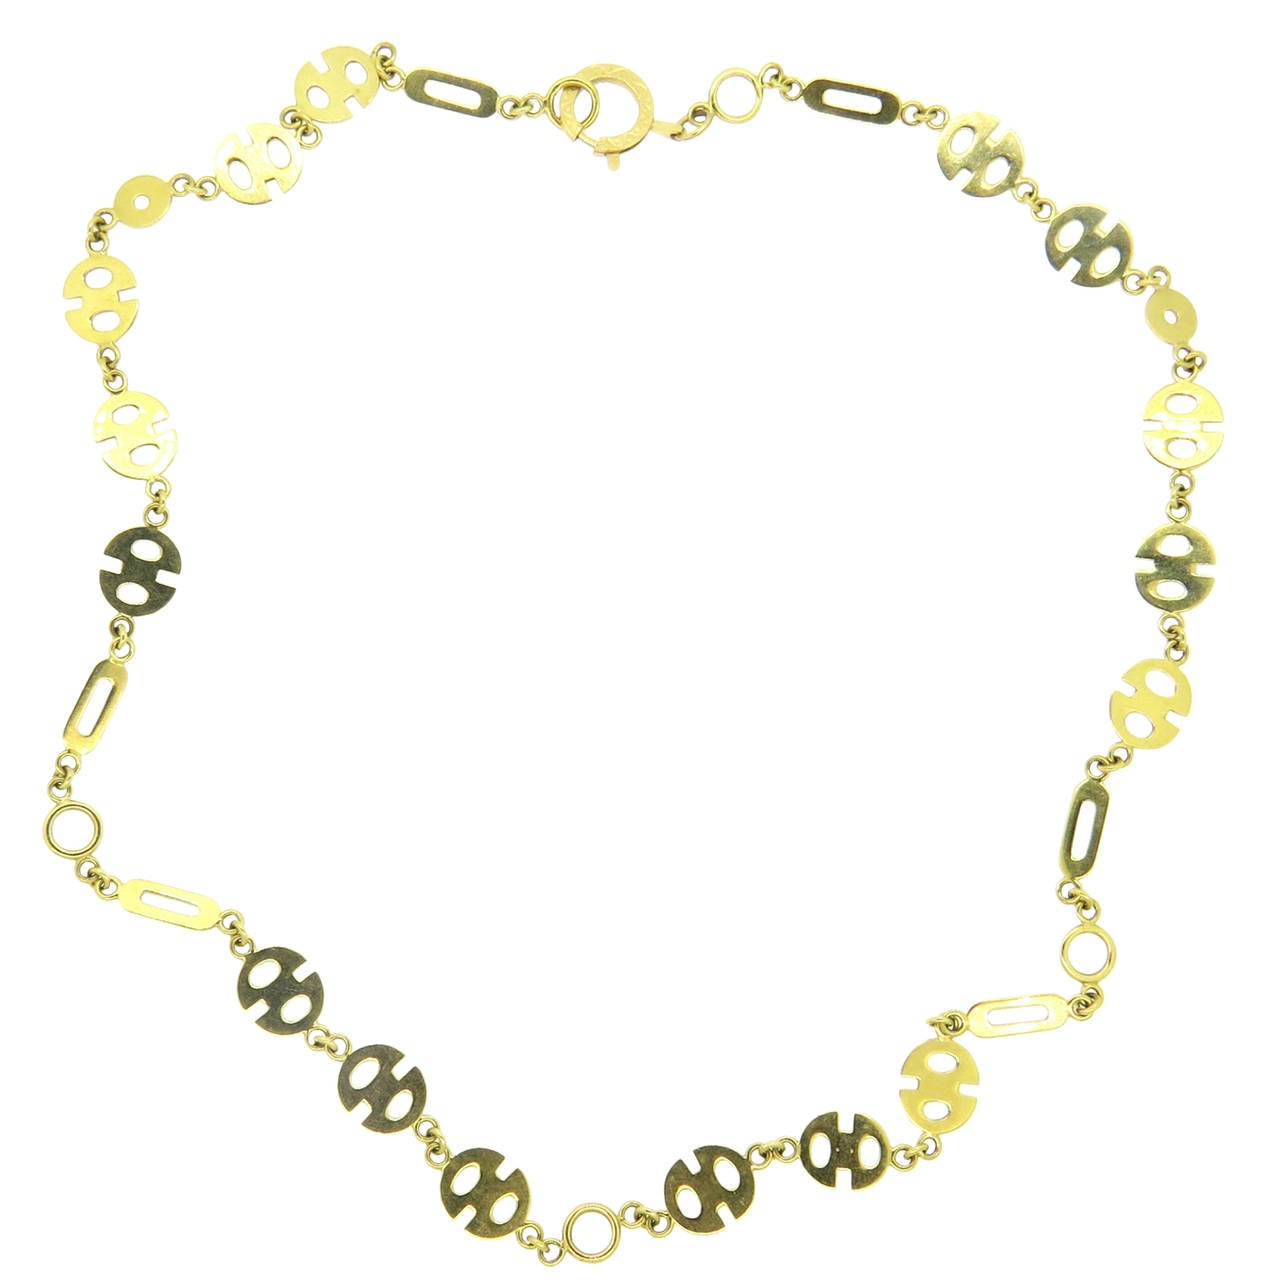 1970s Gold Link Necklace